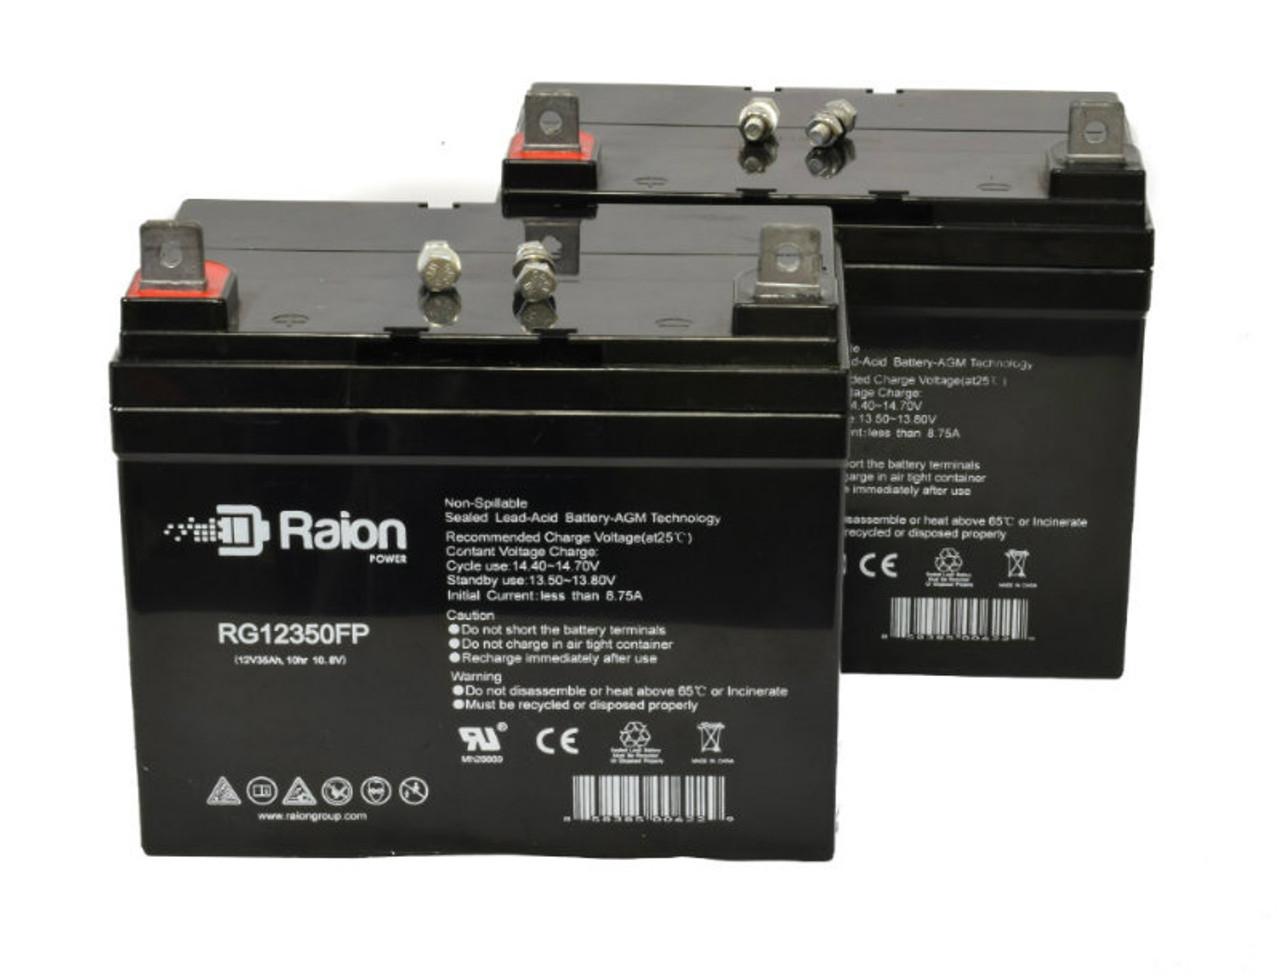 Raion Power RG12350FP Replacement Wheelchair Battery For Pace Saver Eclipse (2 Pack)